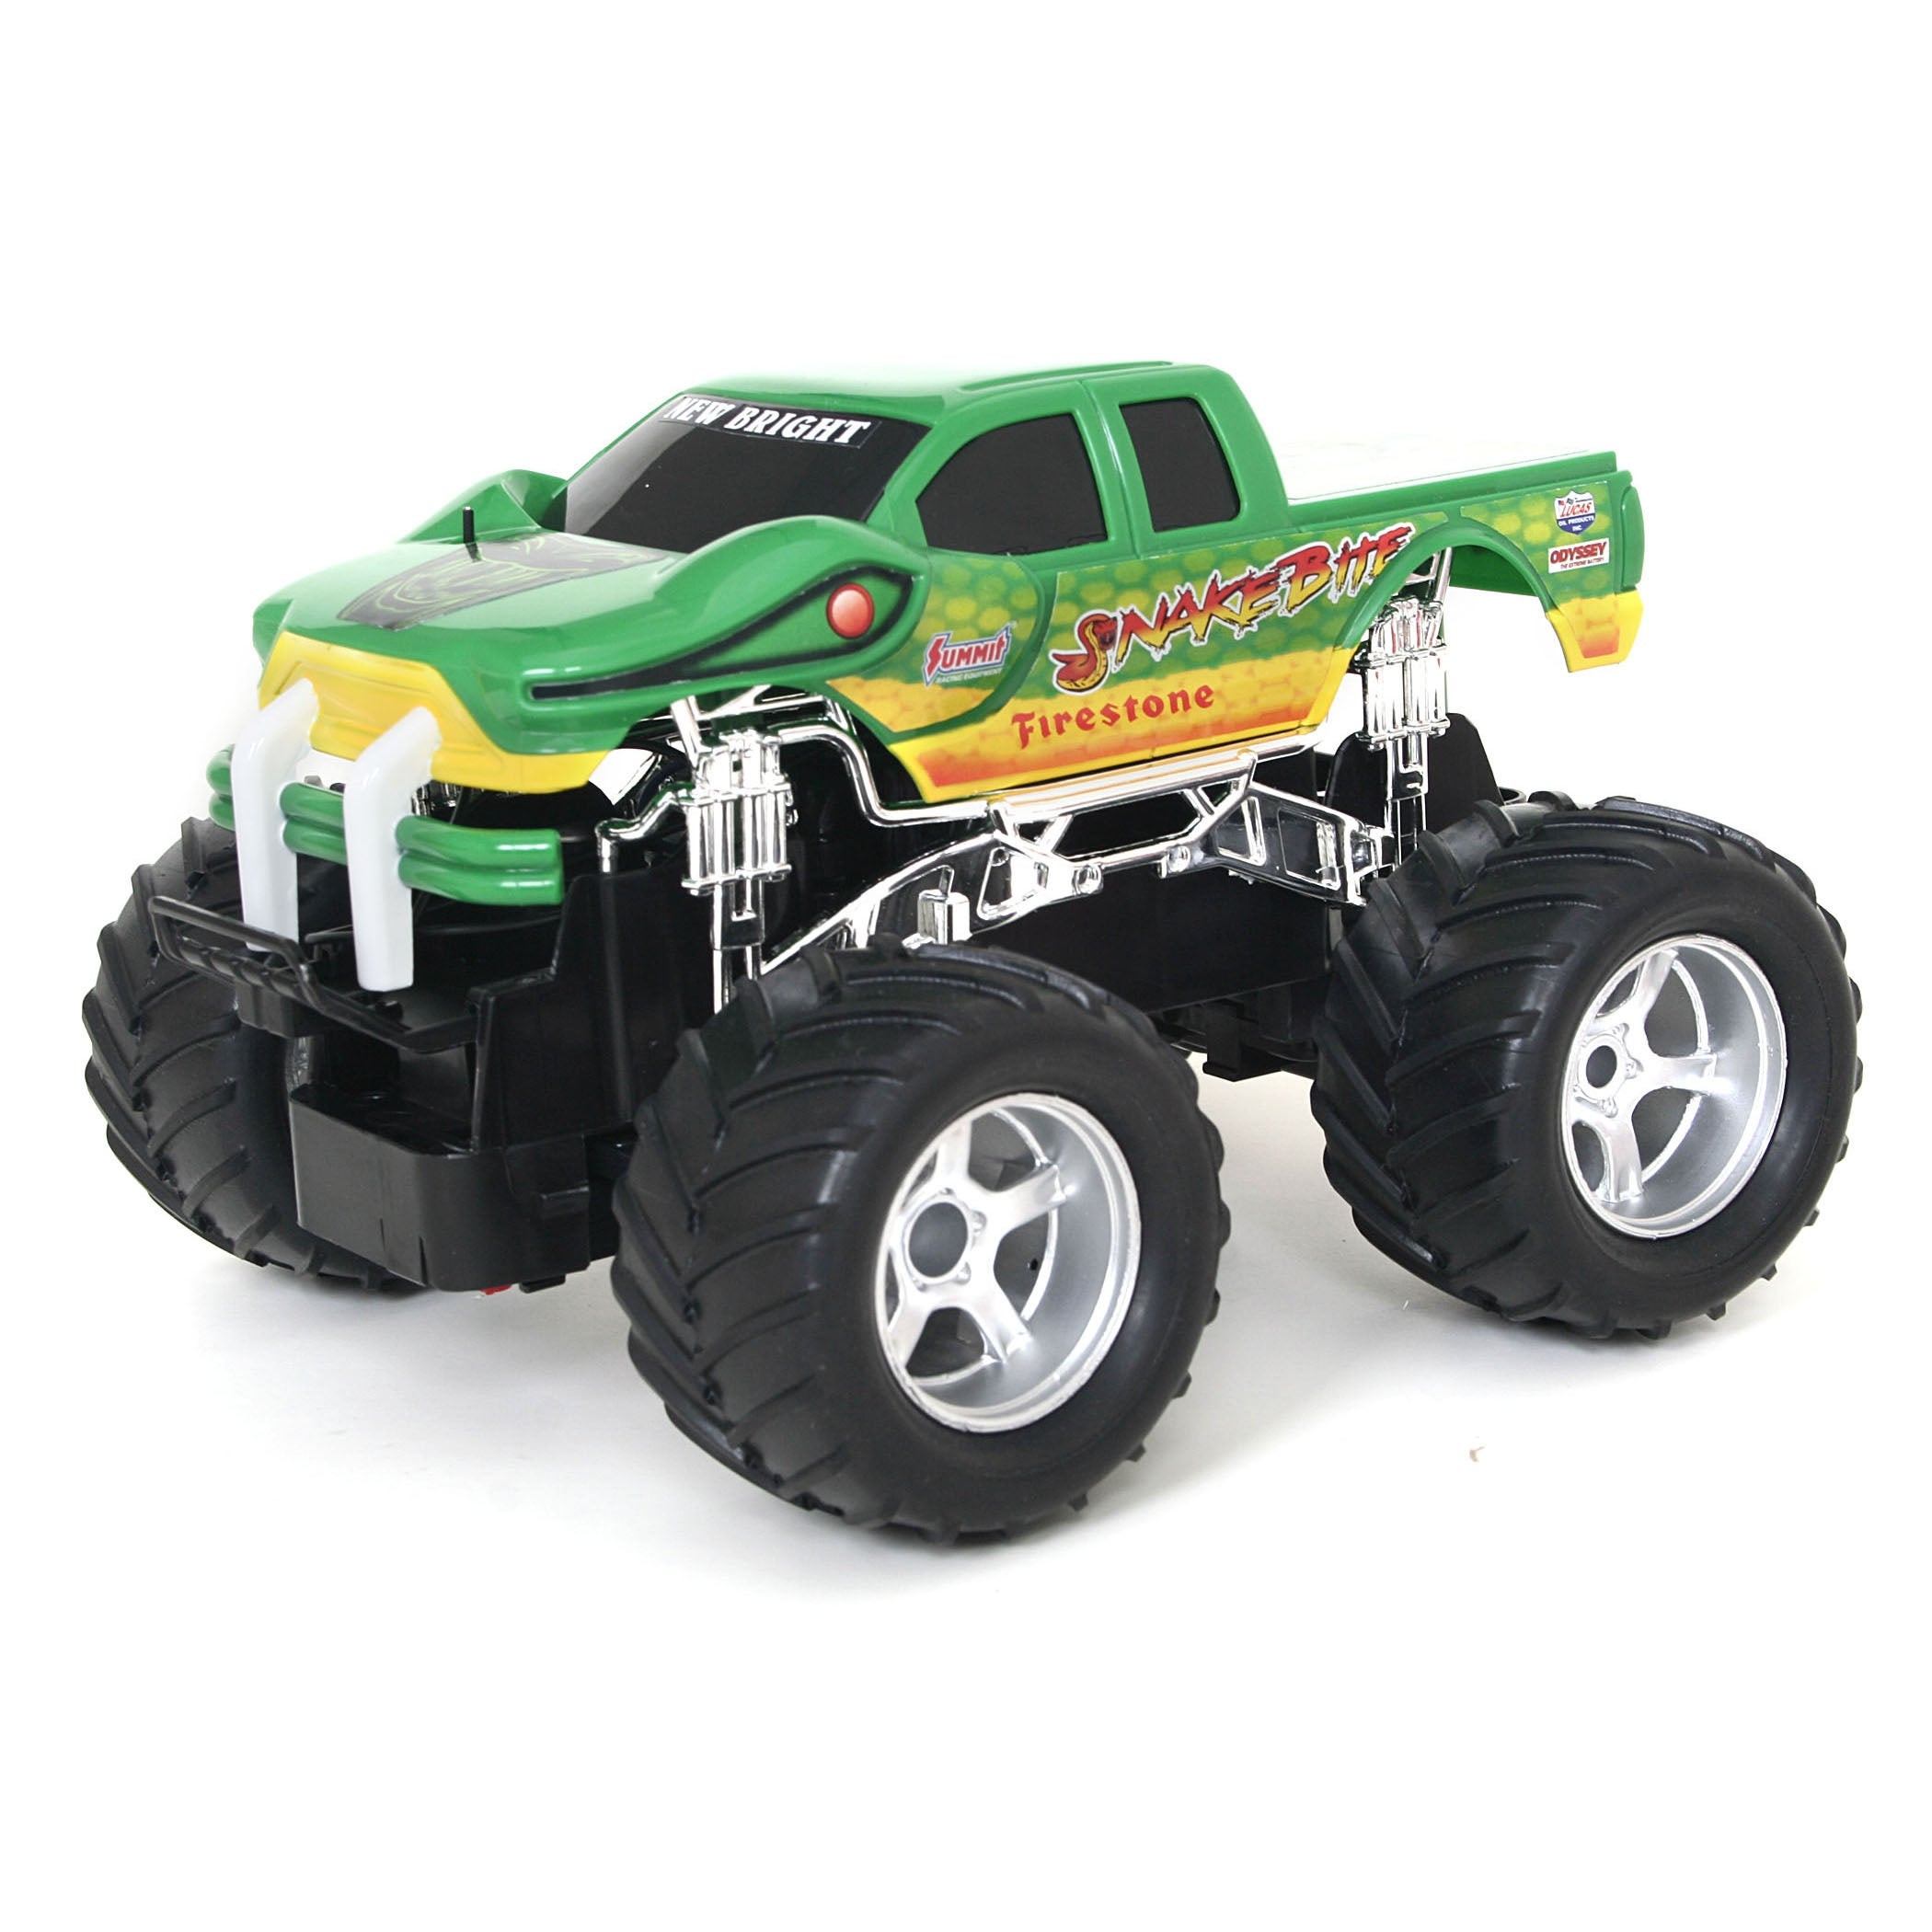 Snake Bite Green R/C Monster Truck